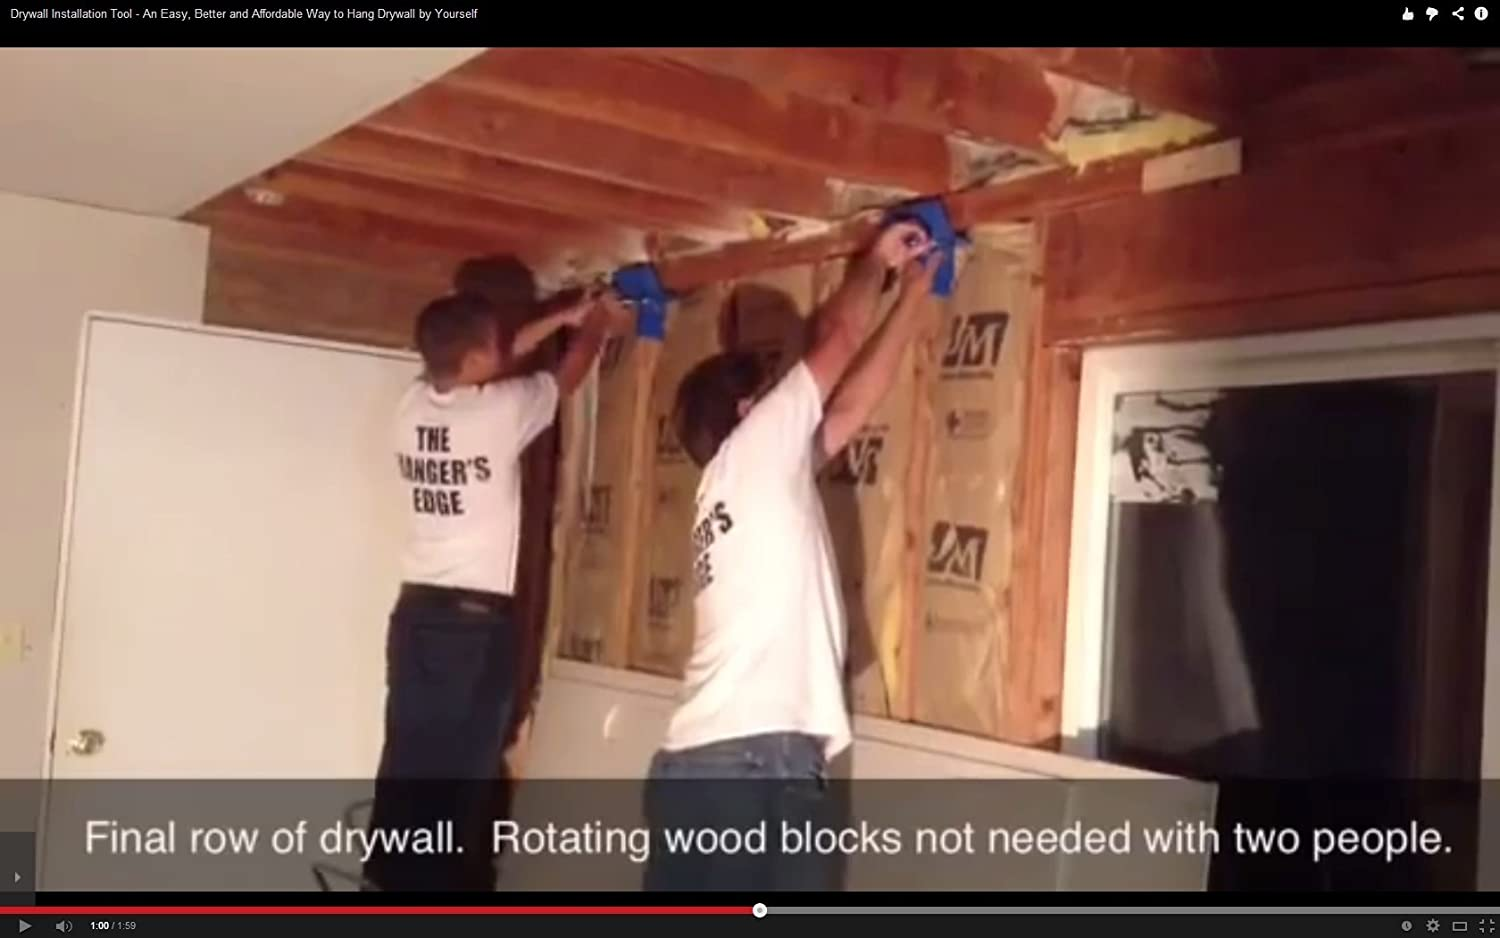 How to hang drywall on walls - How To Hang Drywall On Walls 41